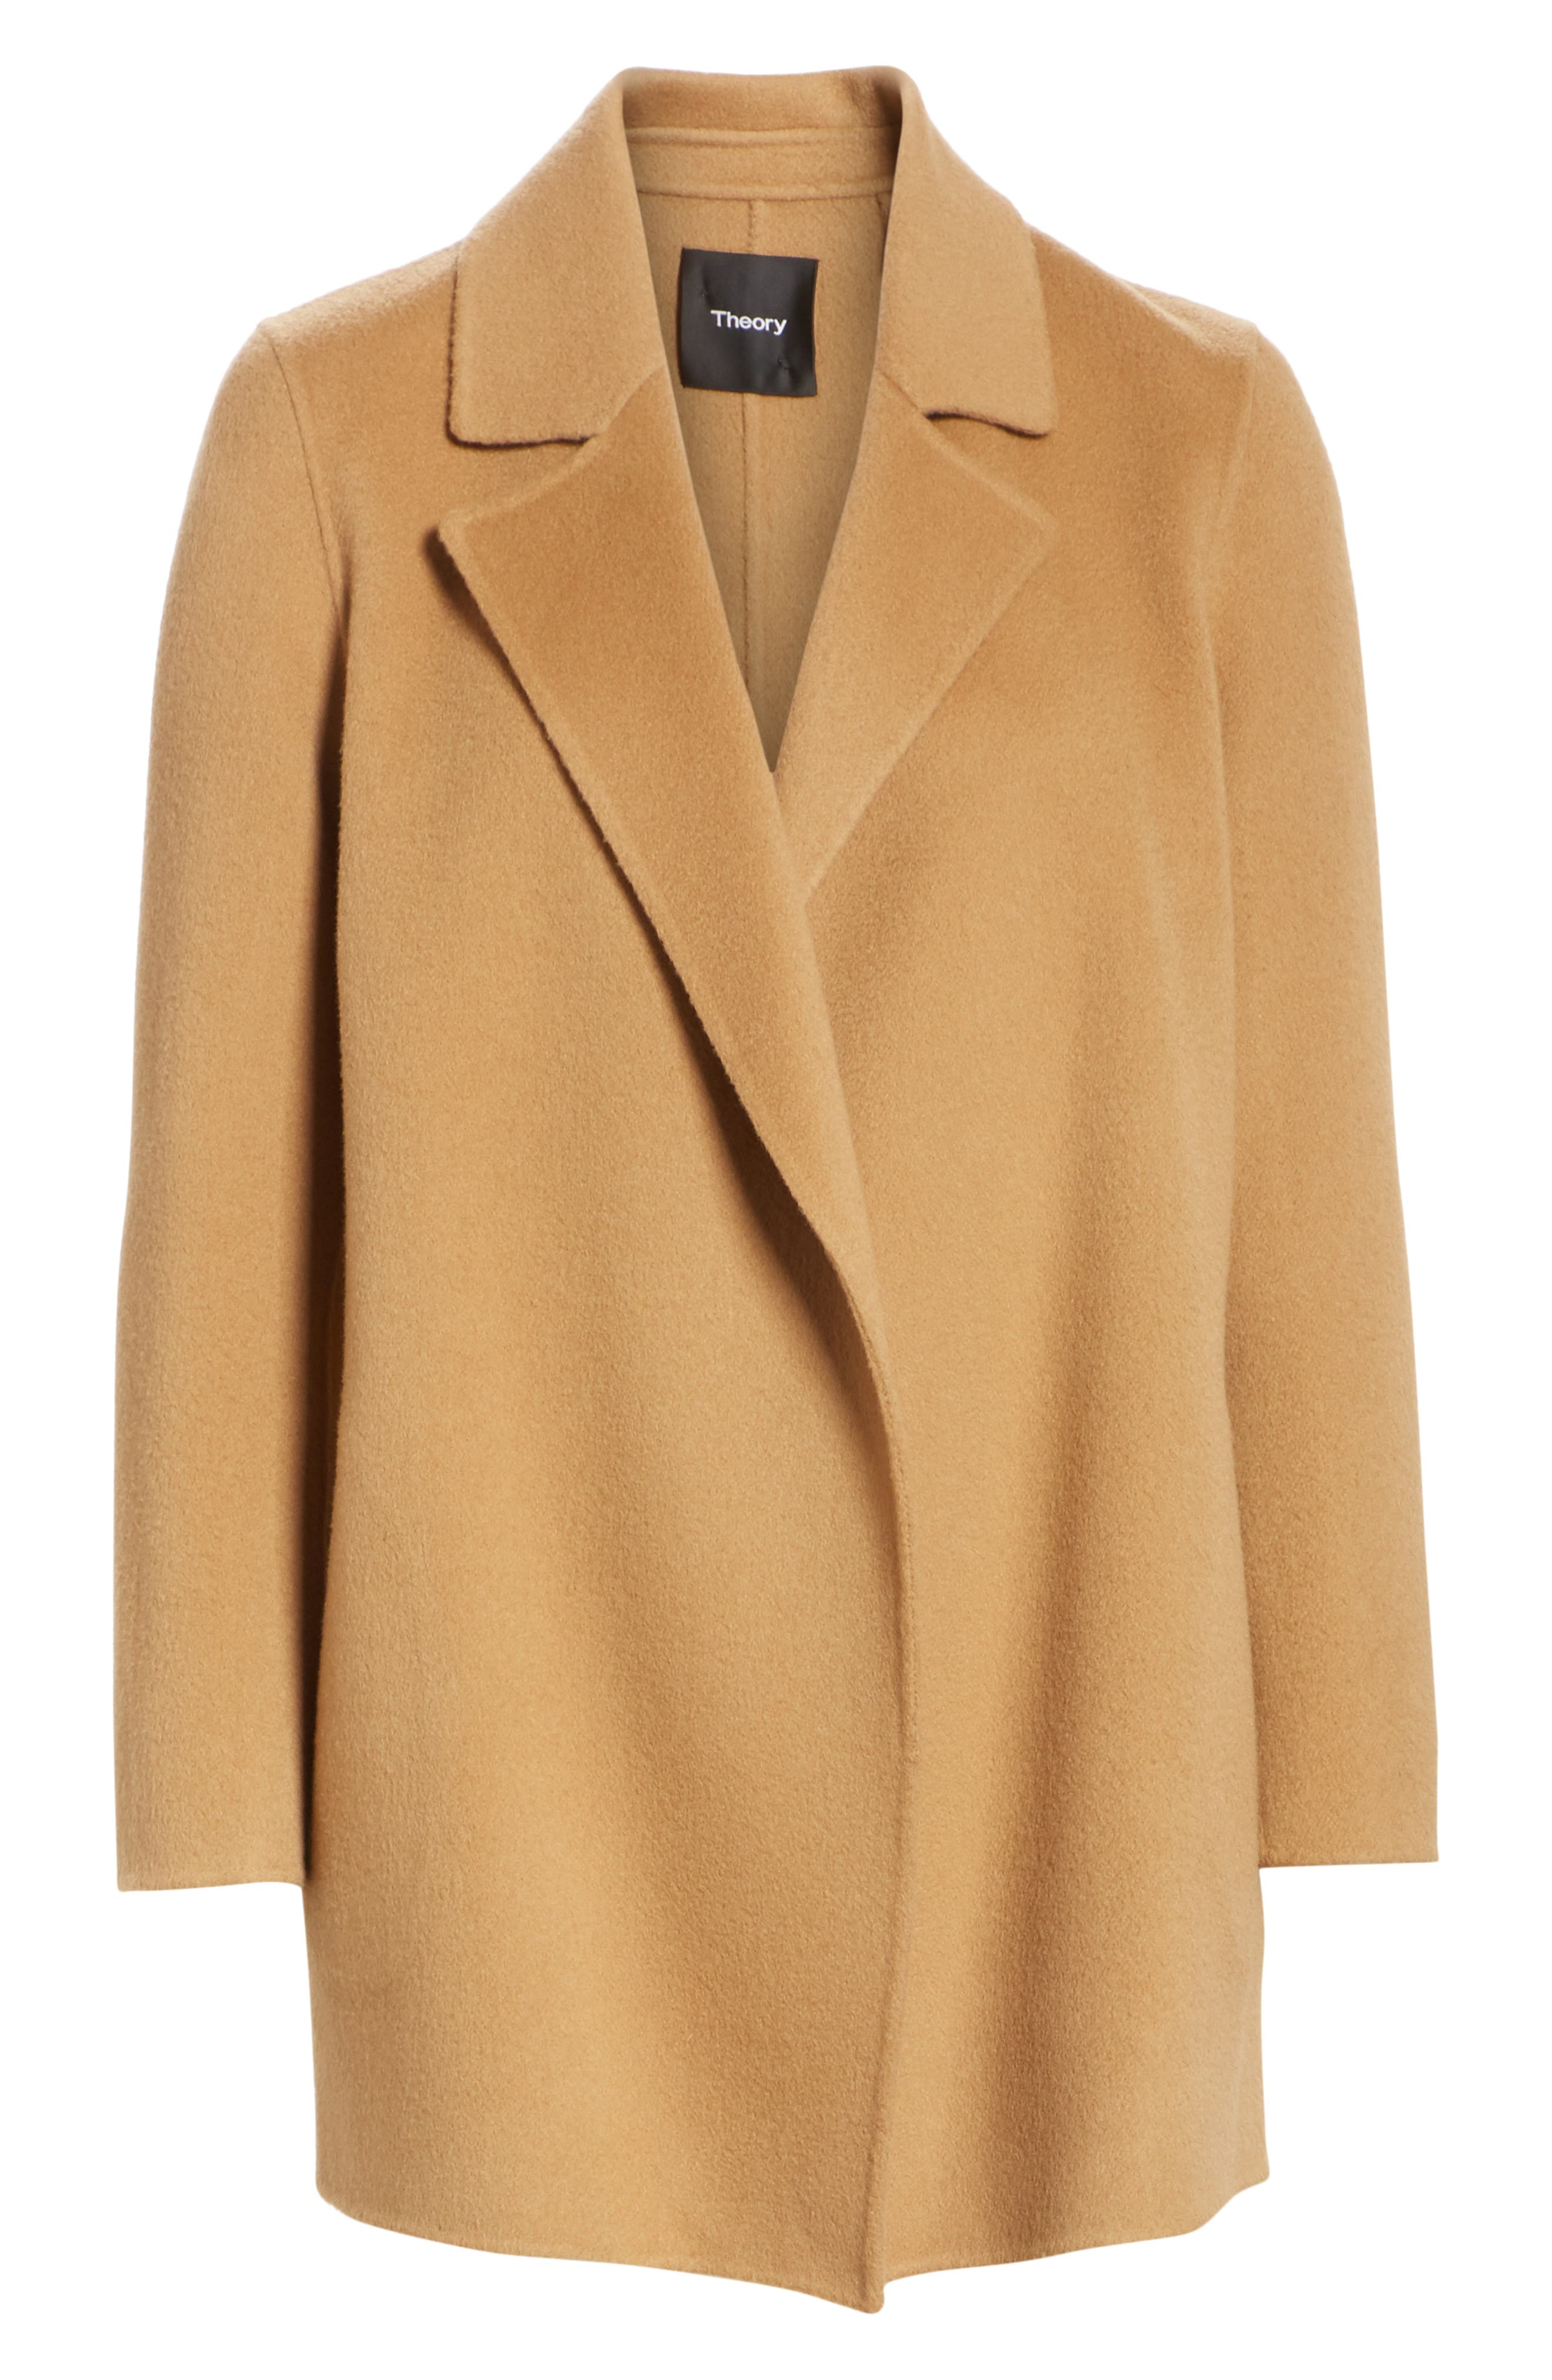 THEORY,                             Clairene New Divide Wool & Cashmere Coat,                             Alternate thumbnail 5, color,                             218